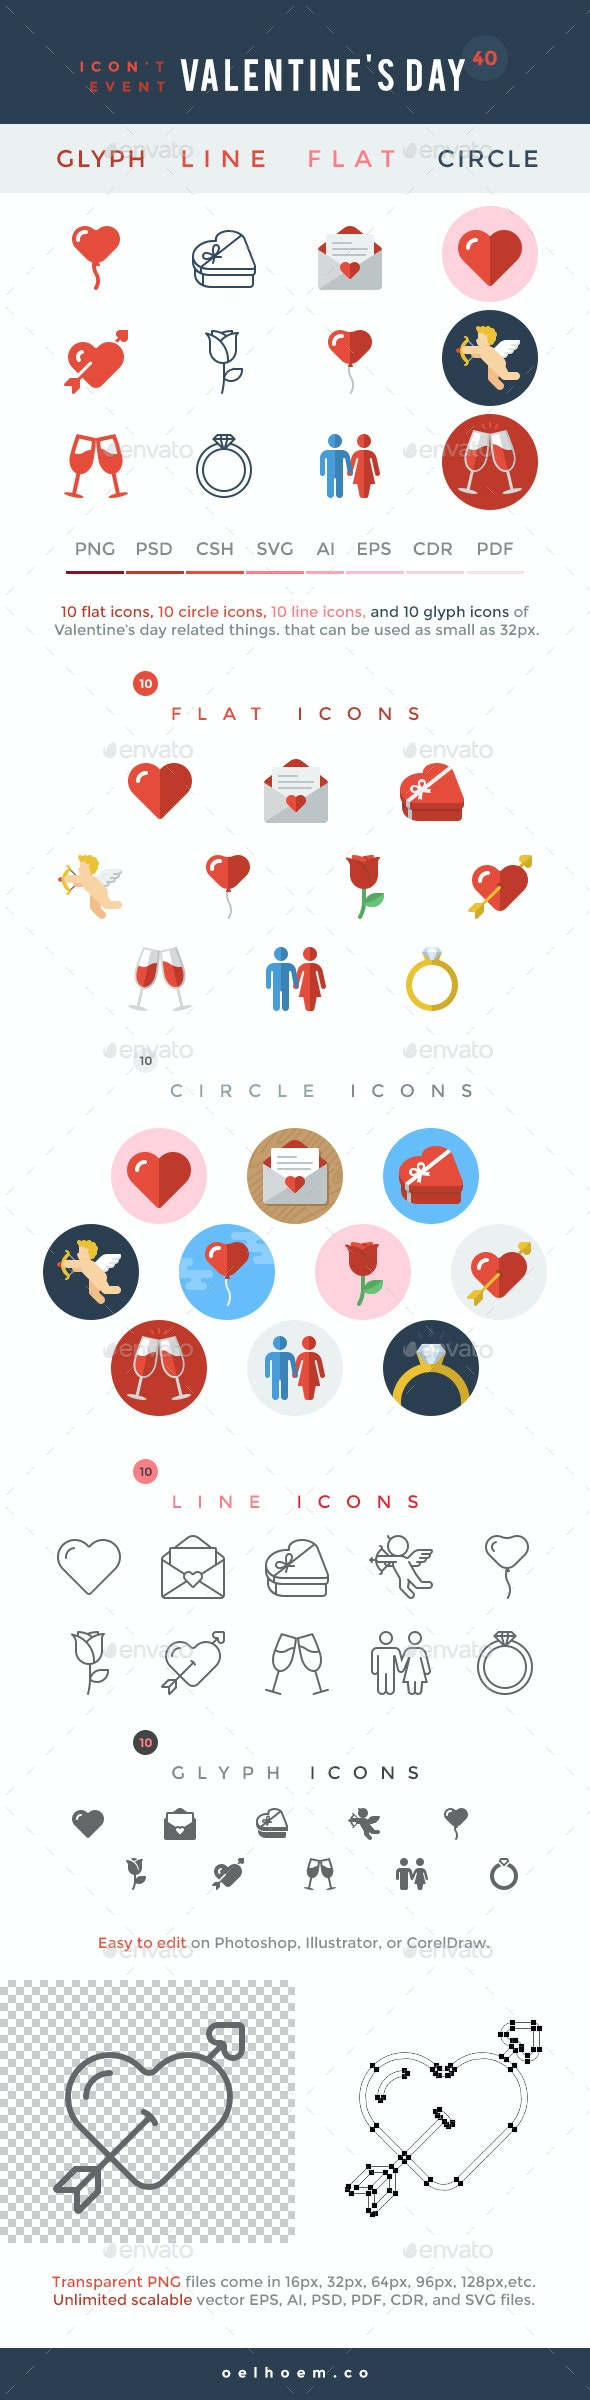 Icon't Event - 40 Valentine's Day Icons